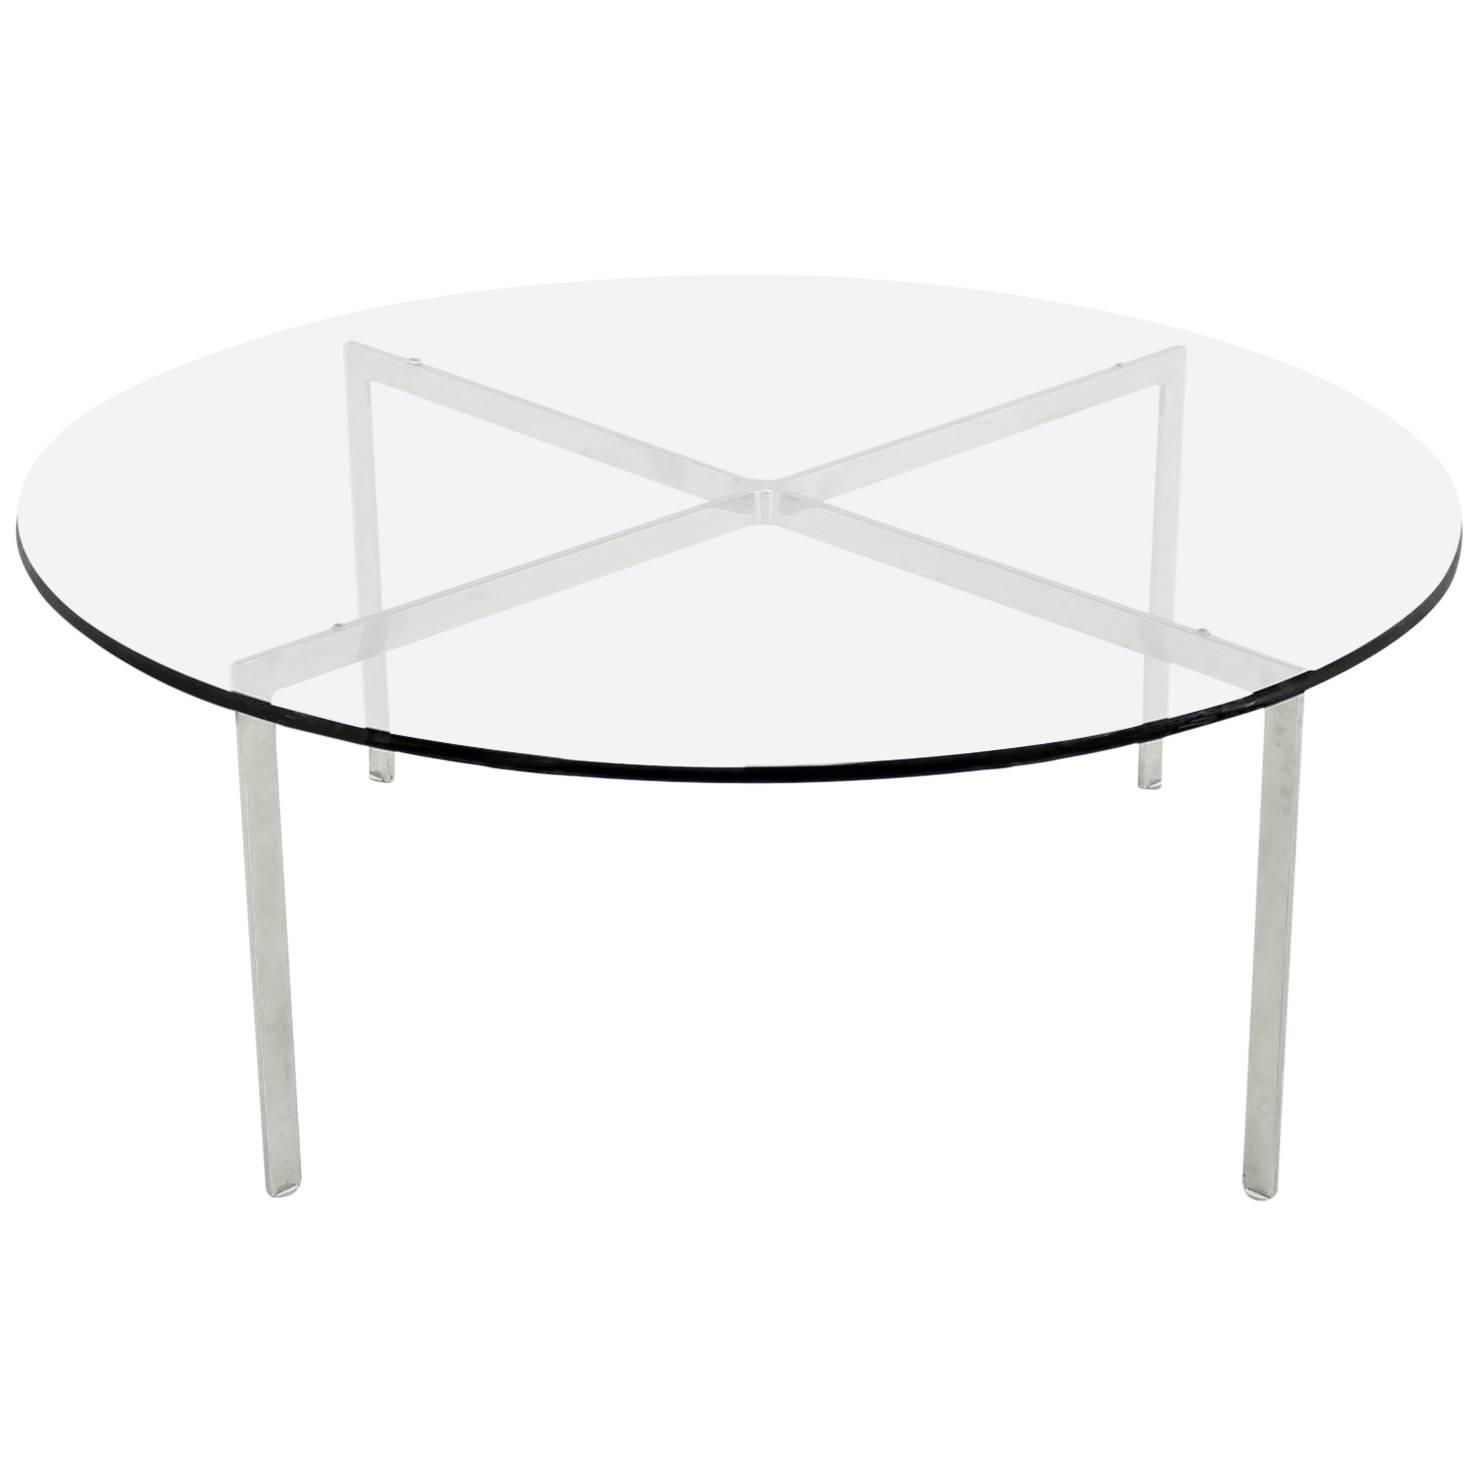 Mid Century Modern Chrome Base And Glass Top Coffee Table For Sale At 1stdibs